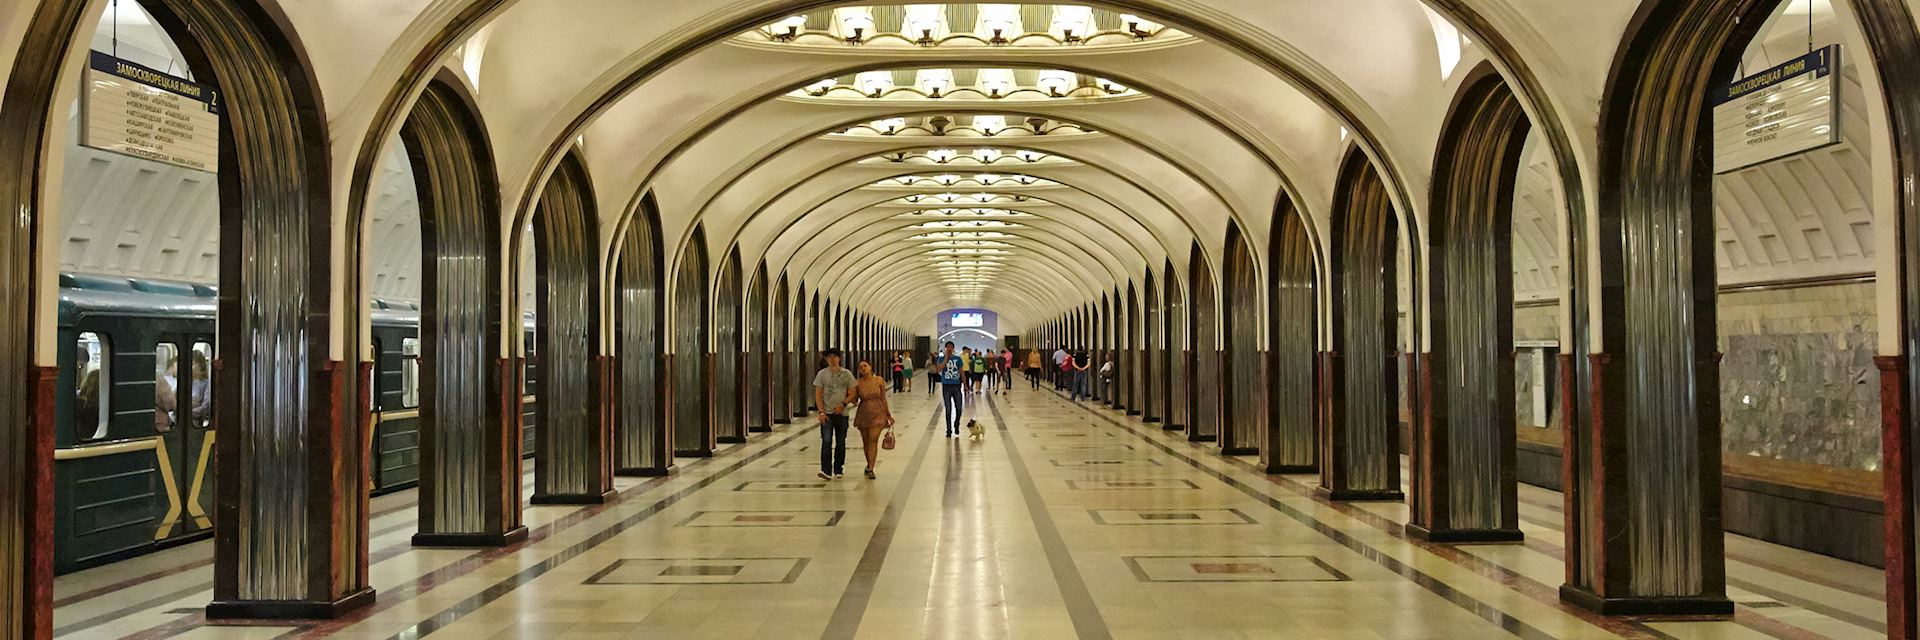 Underground station in Moscow